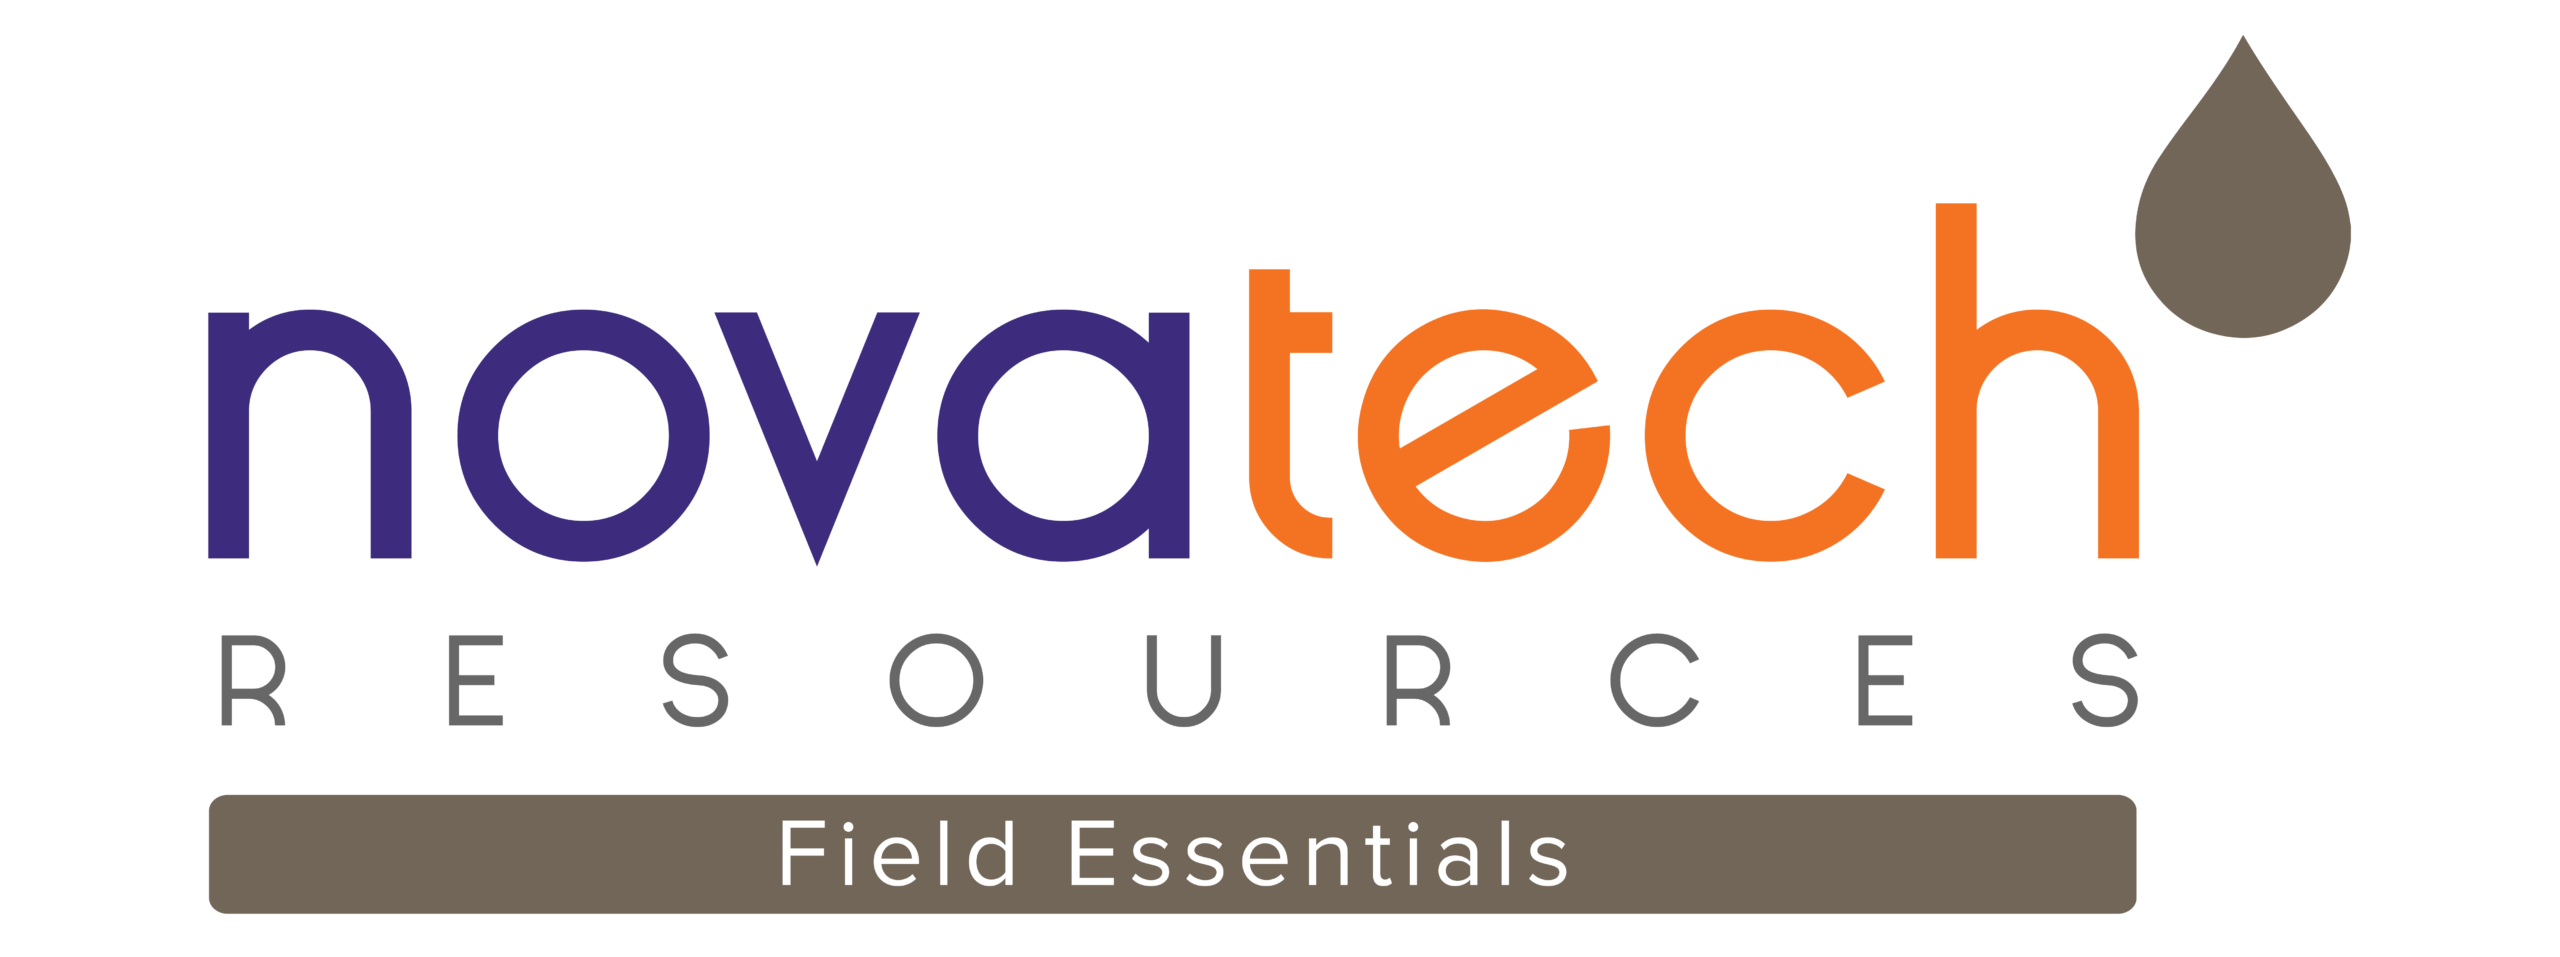 Field Essentials By Novatech Resources | Singapore